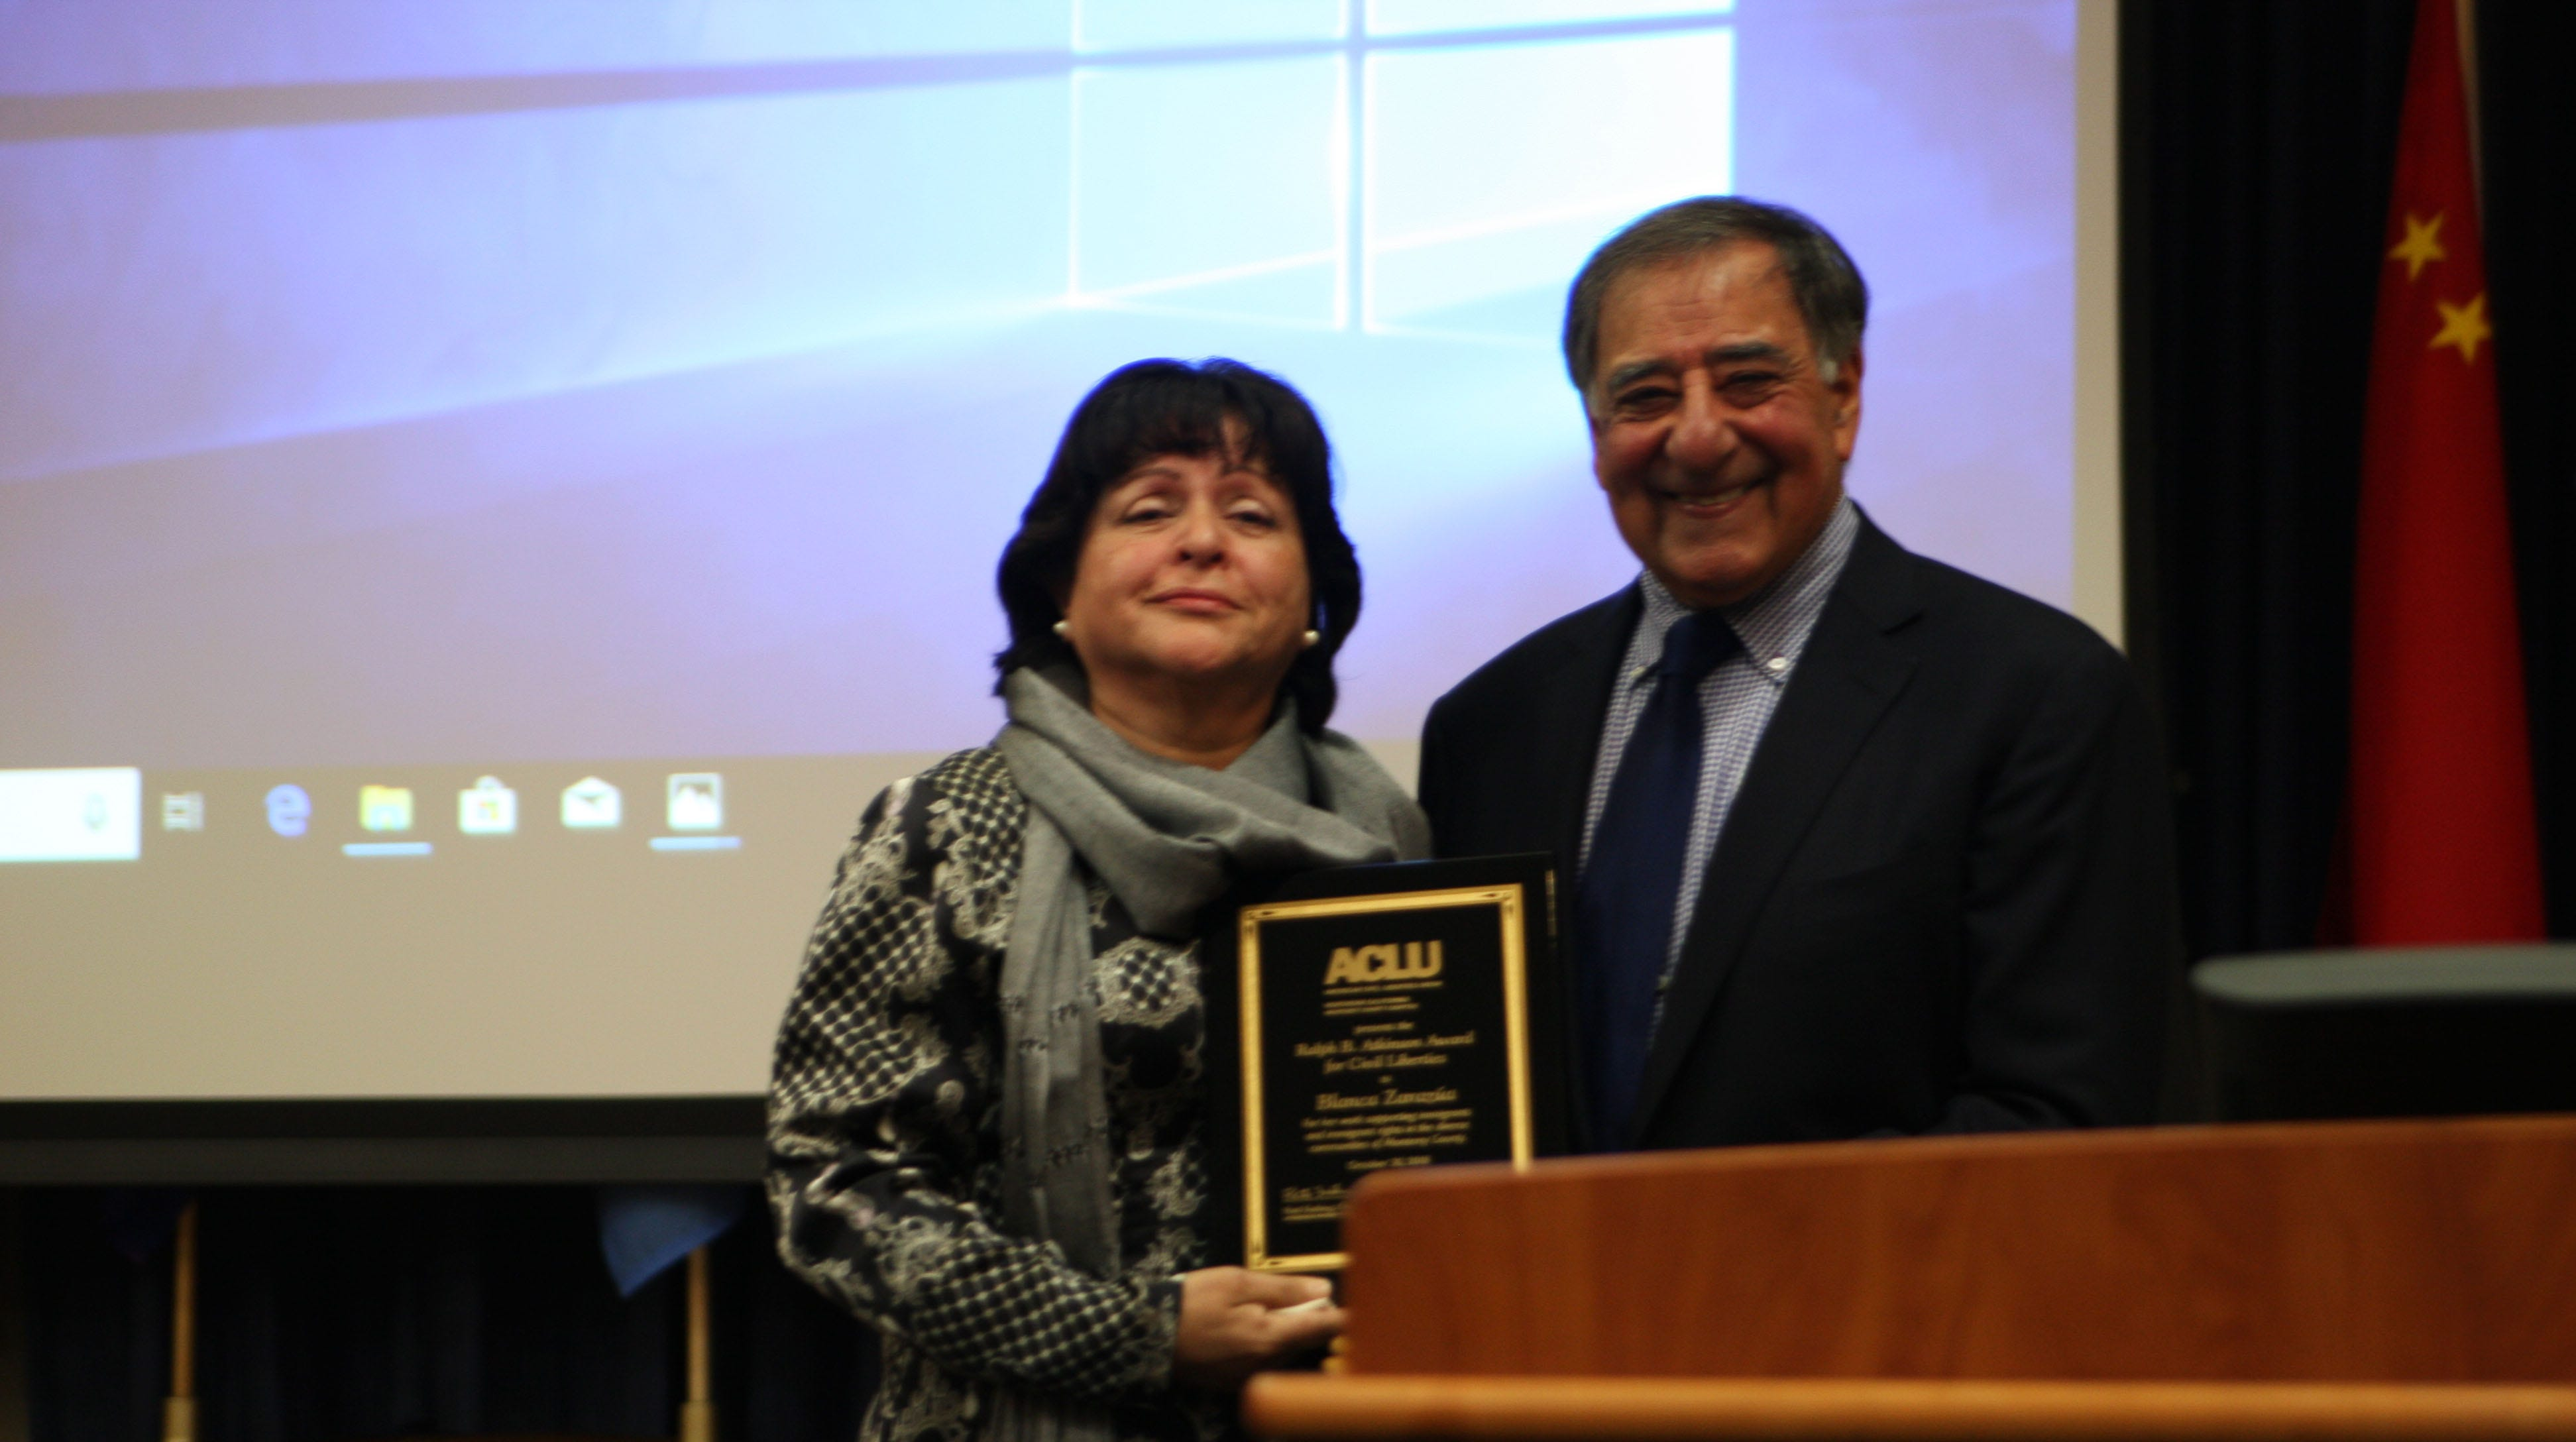 Blanca Zarazúa accepts the 2018 ACLU's Ralph B. Atkinson Civil Liberties Award from Hon. Leon J. Panetta, the 1983 award winner.